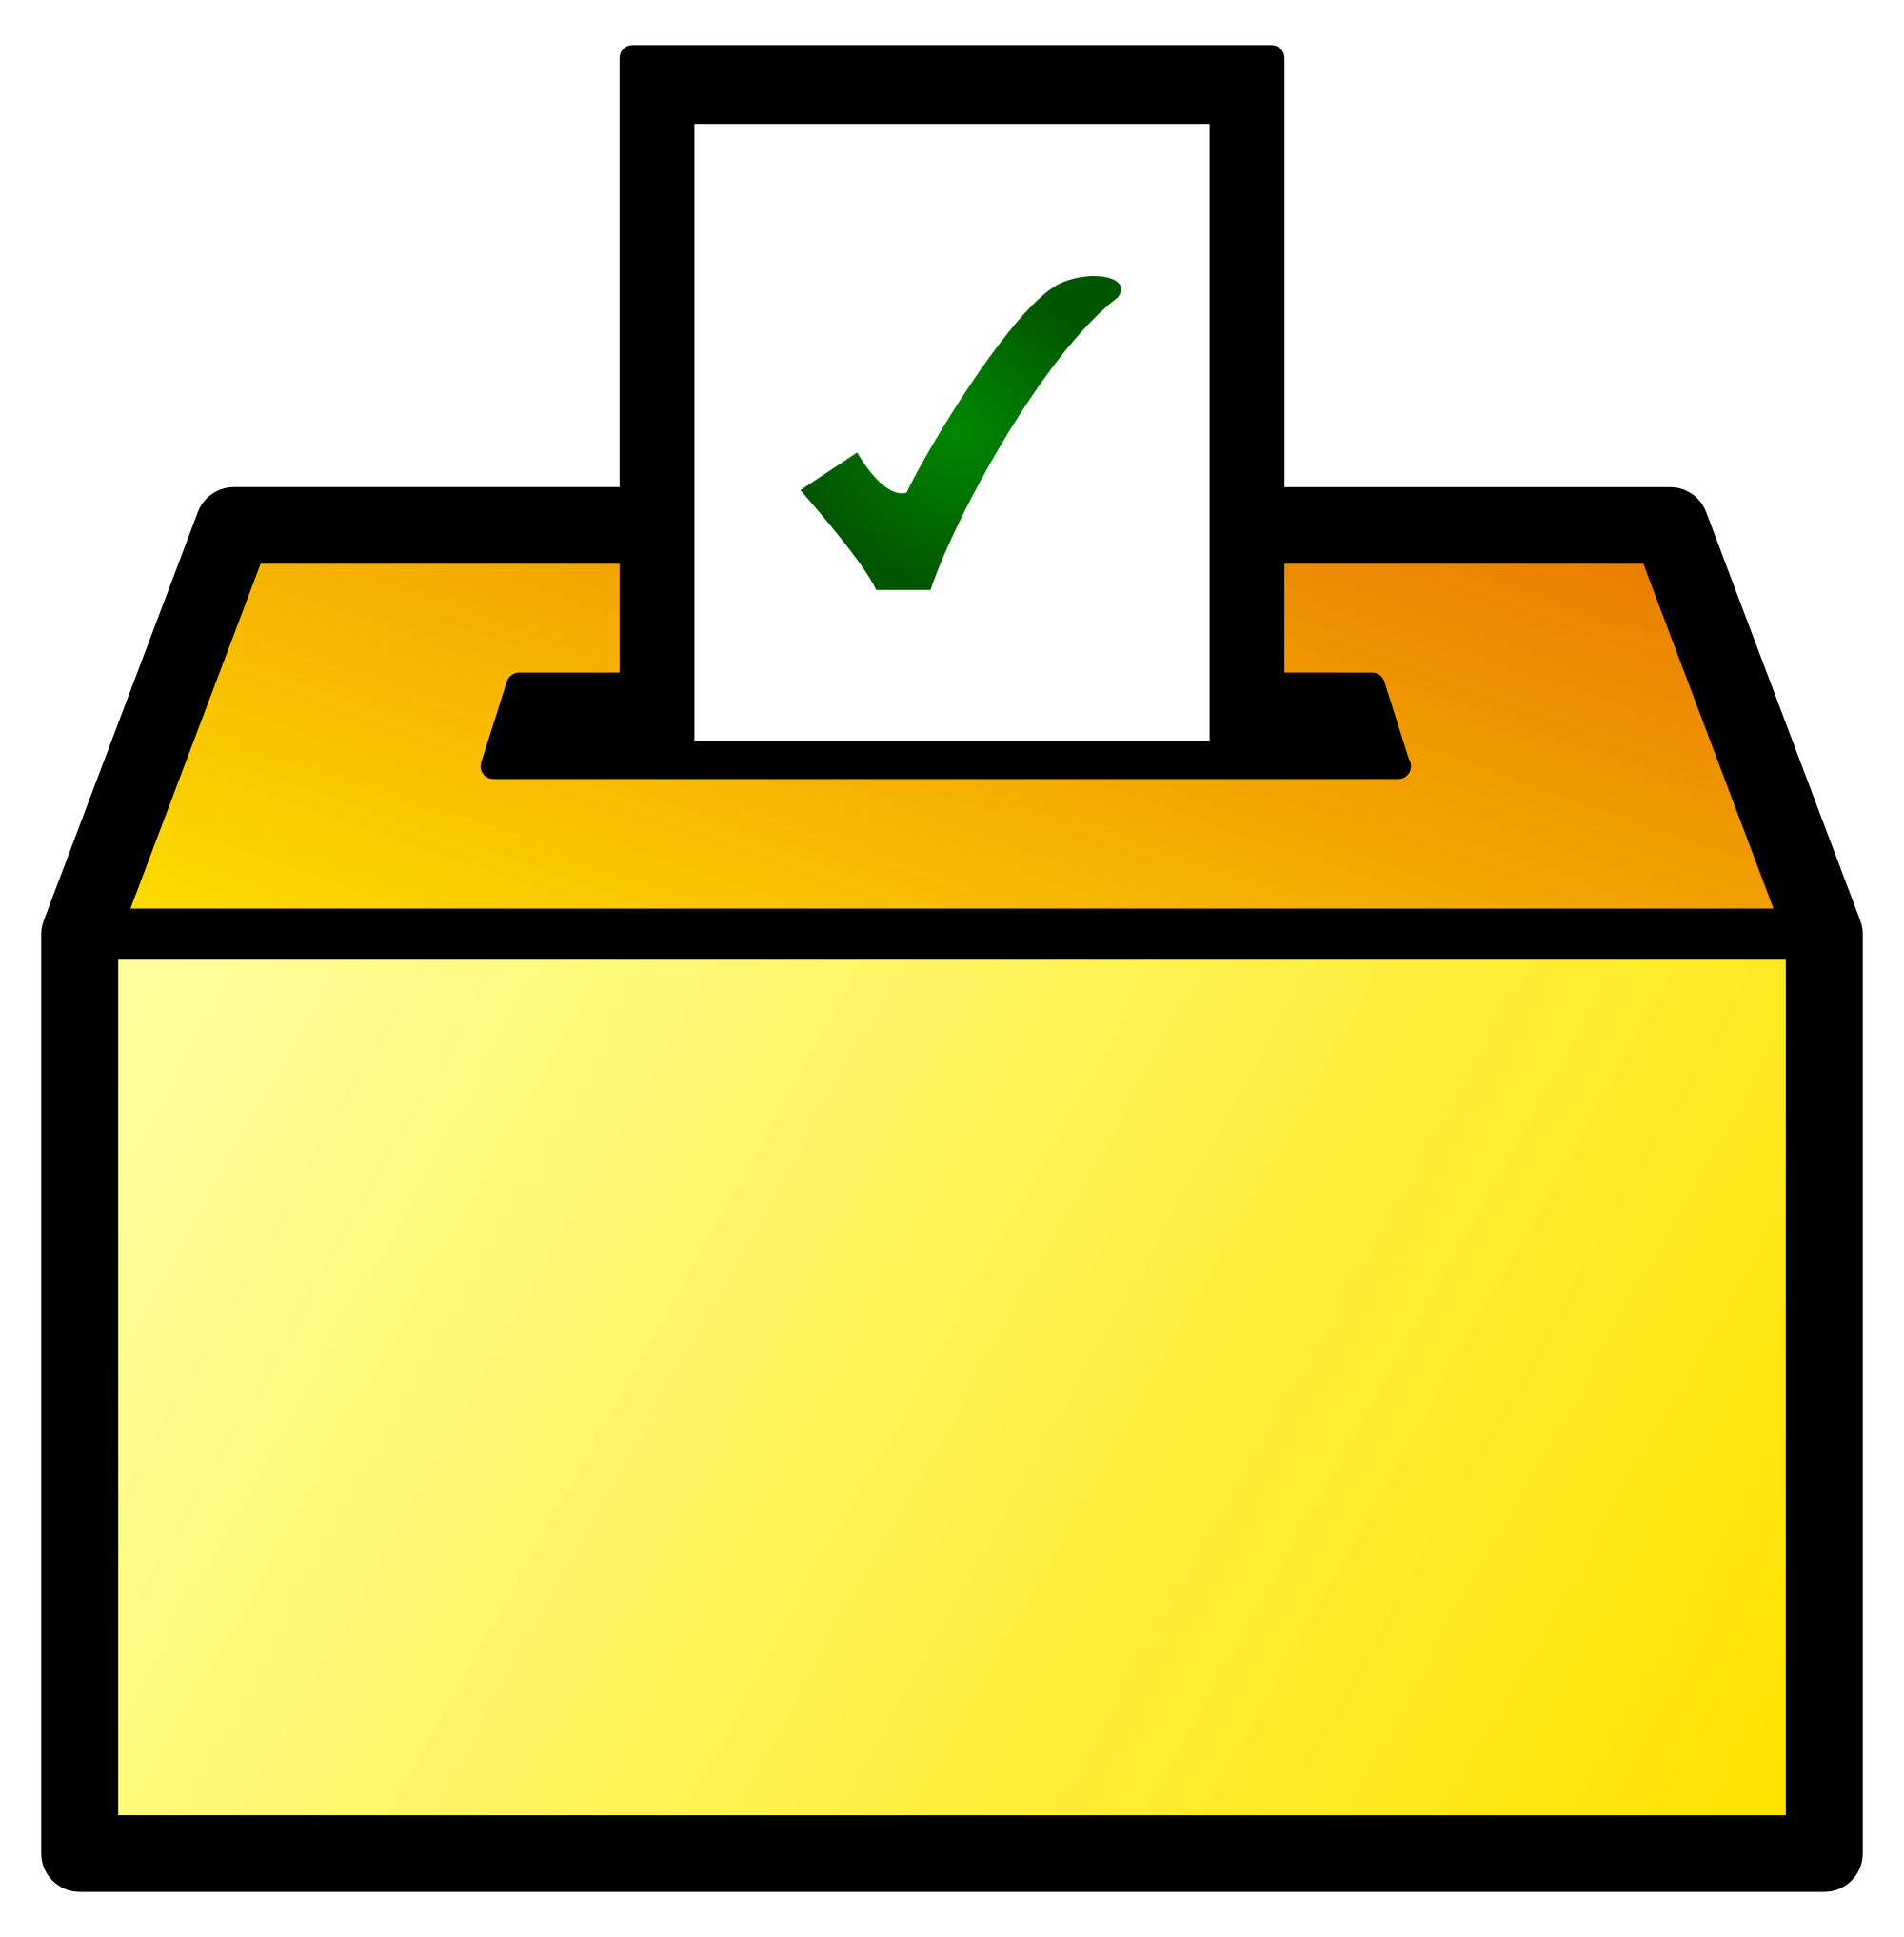 Voting clipart icon, Voting icon Transparent FREE for.